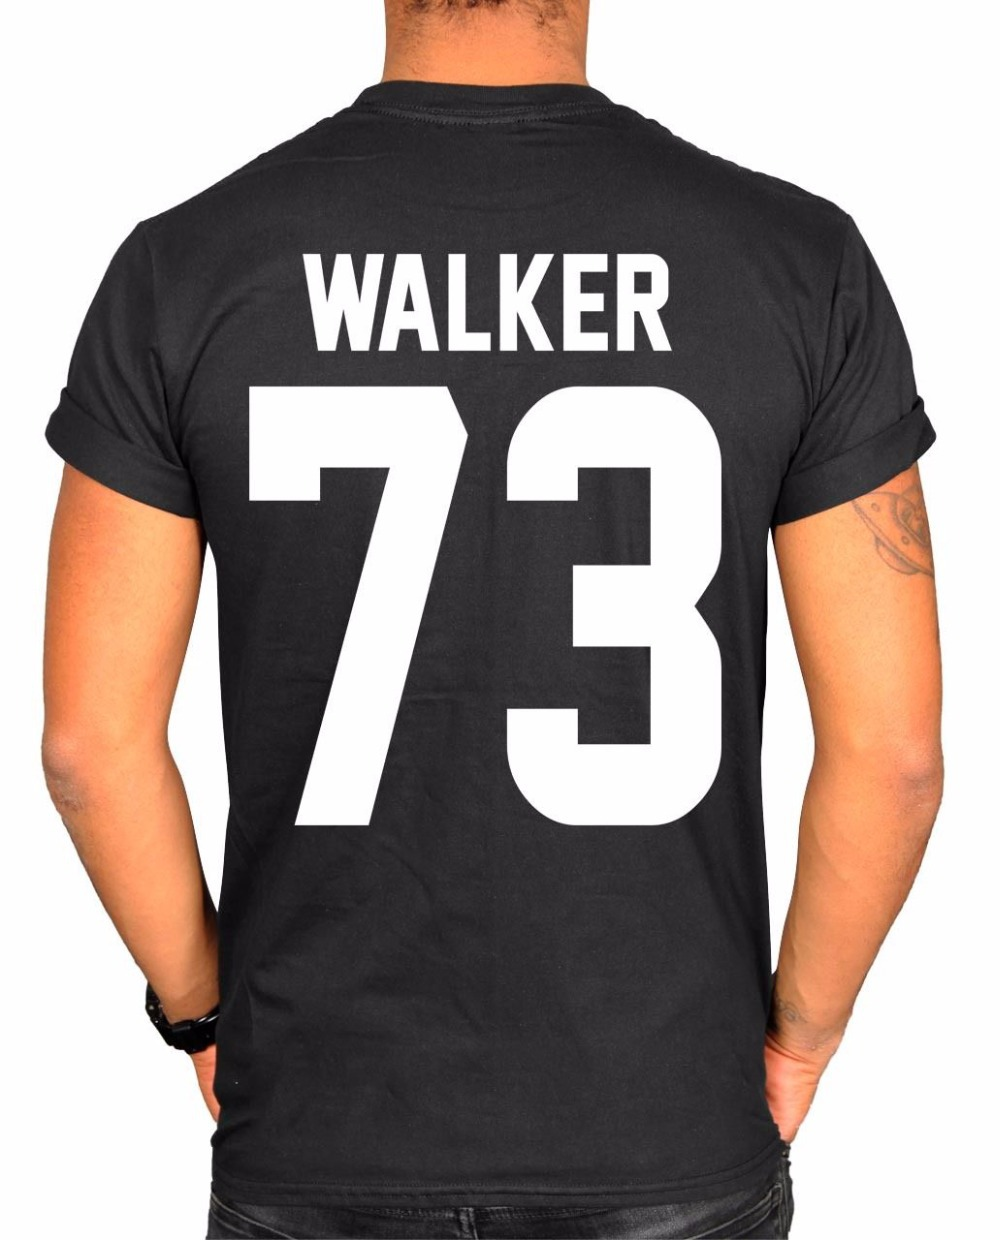 Paul walker 73 t shirt mens brian o 39 conner rest in peace for Best quality mens white t shirts